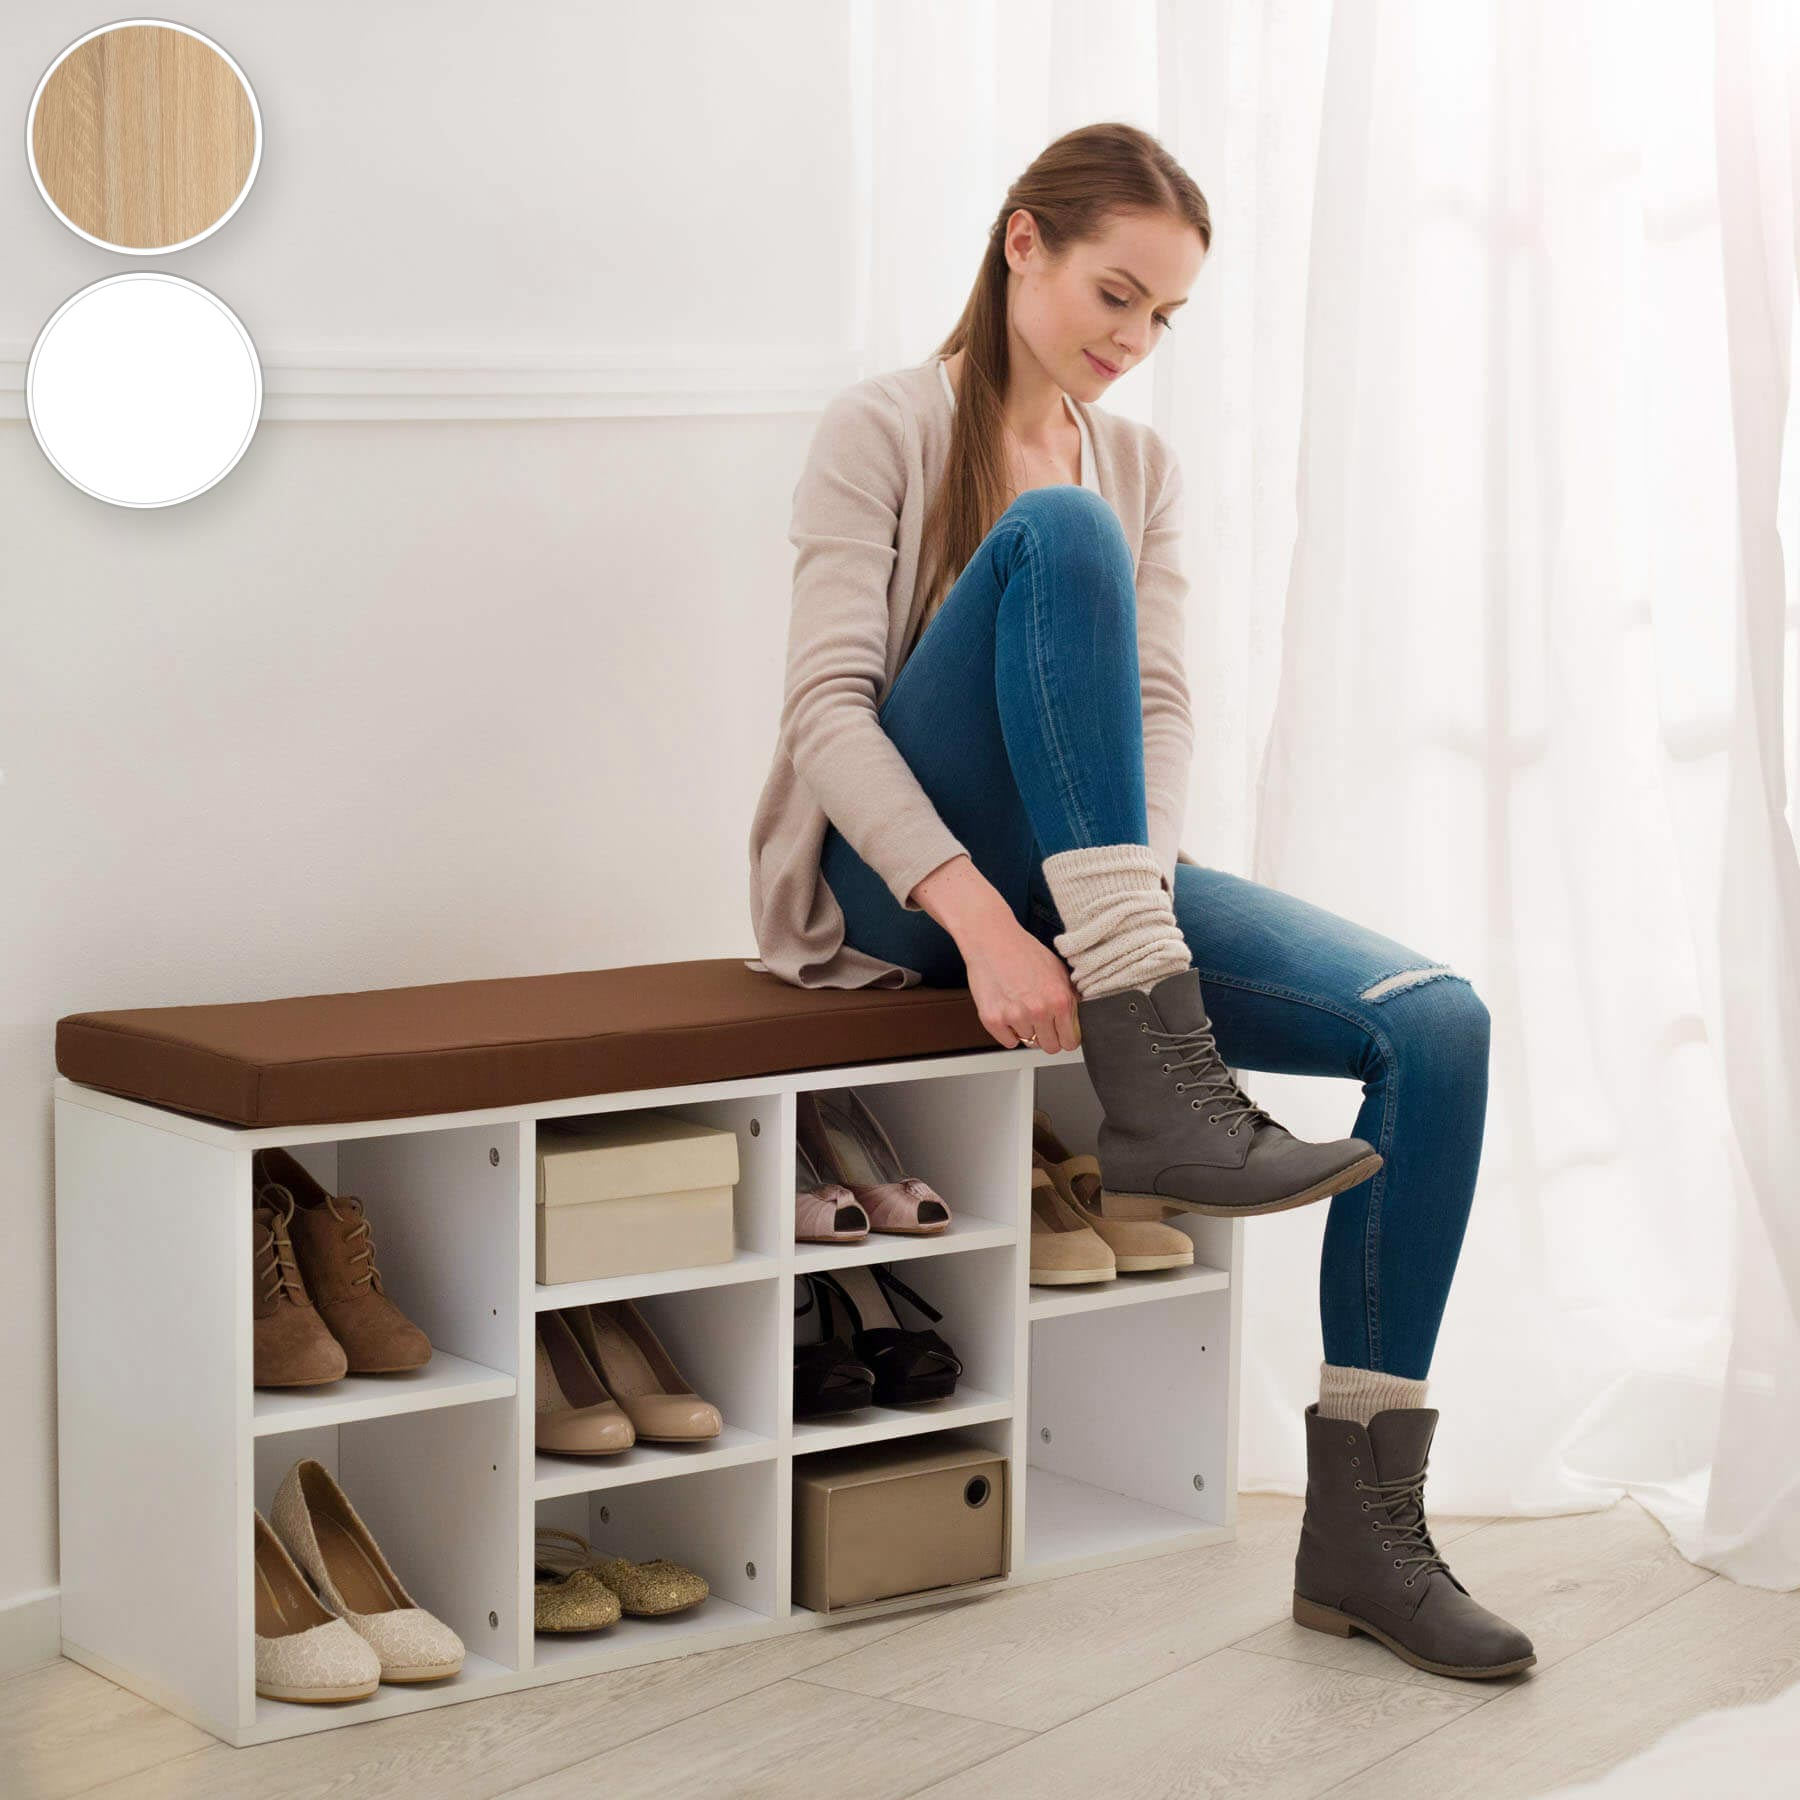 Shoe Storage And Seat 28 Images White Shoe Storage Bench Cubbie Organizer Wood Seat Shoe